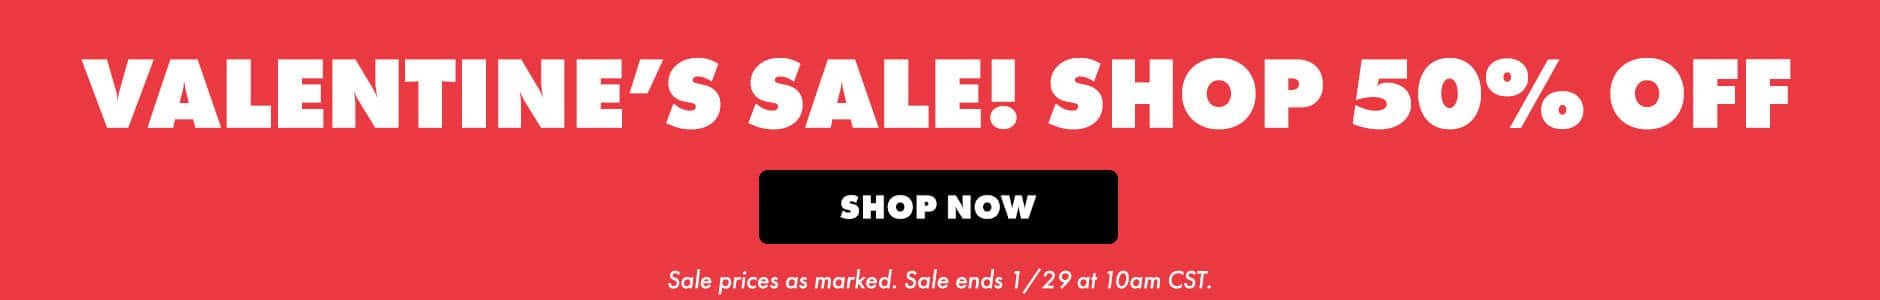 Valentine's sale! Shop 50% off. Shop now. Sale prices as marked. Sale ends 1/29 at 10am CST.